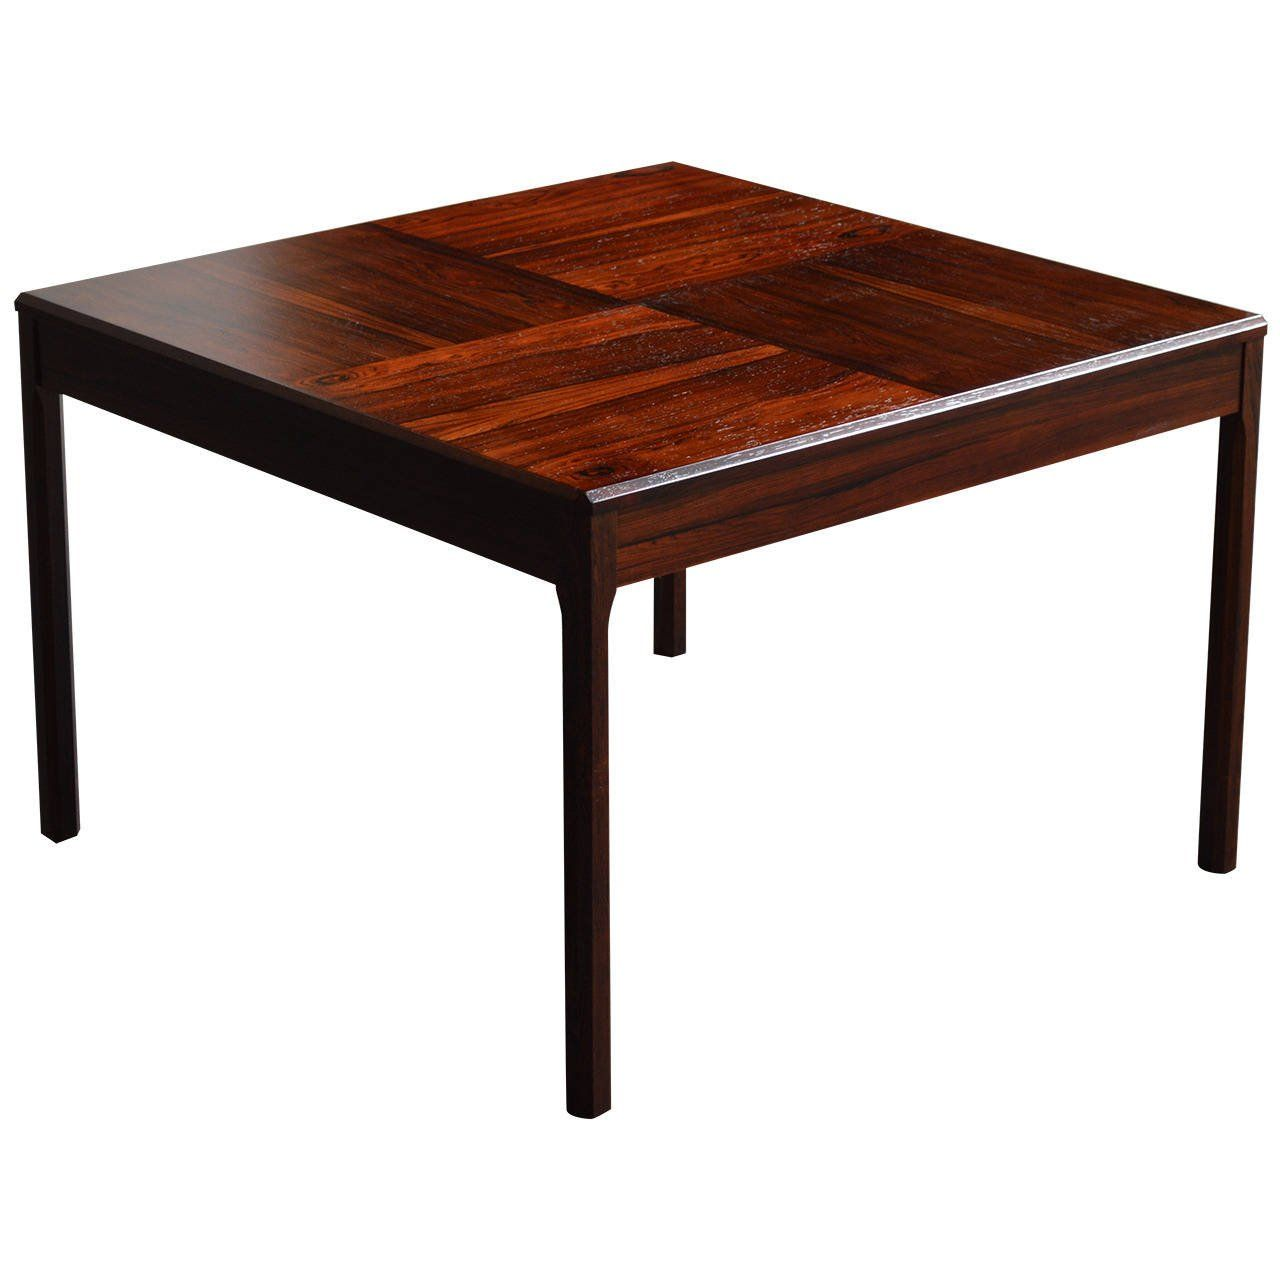 Pin On Case Pieces And Tables Some Wooden Benches [ 1280 x 1280 Pixel ]